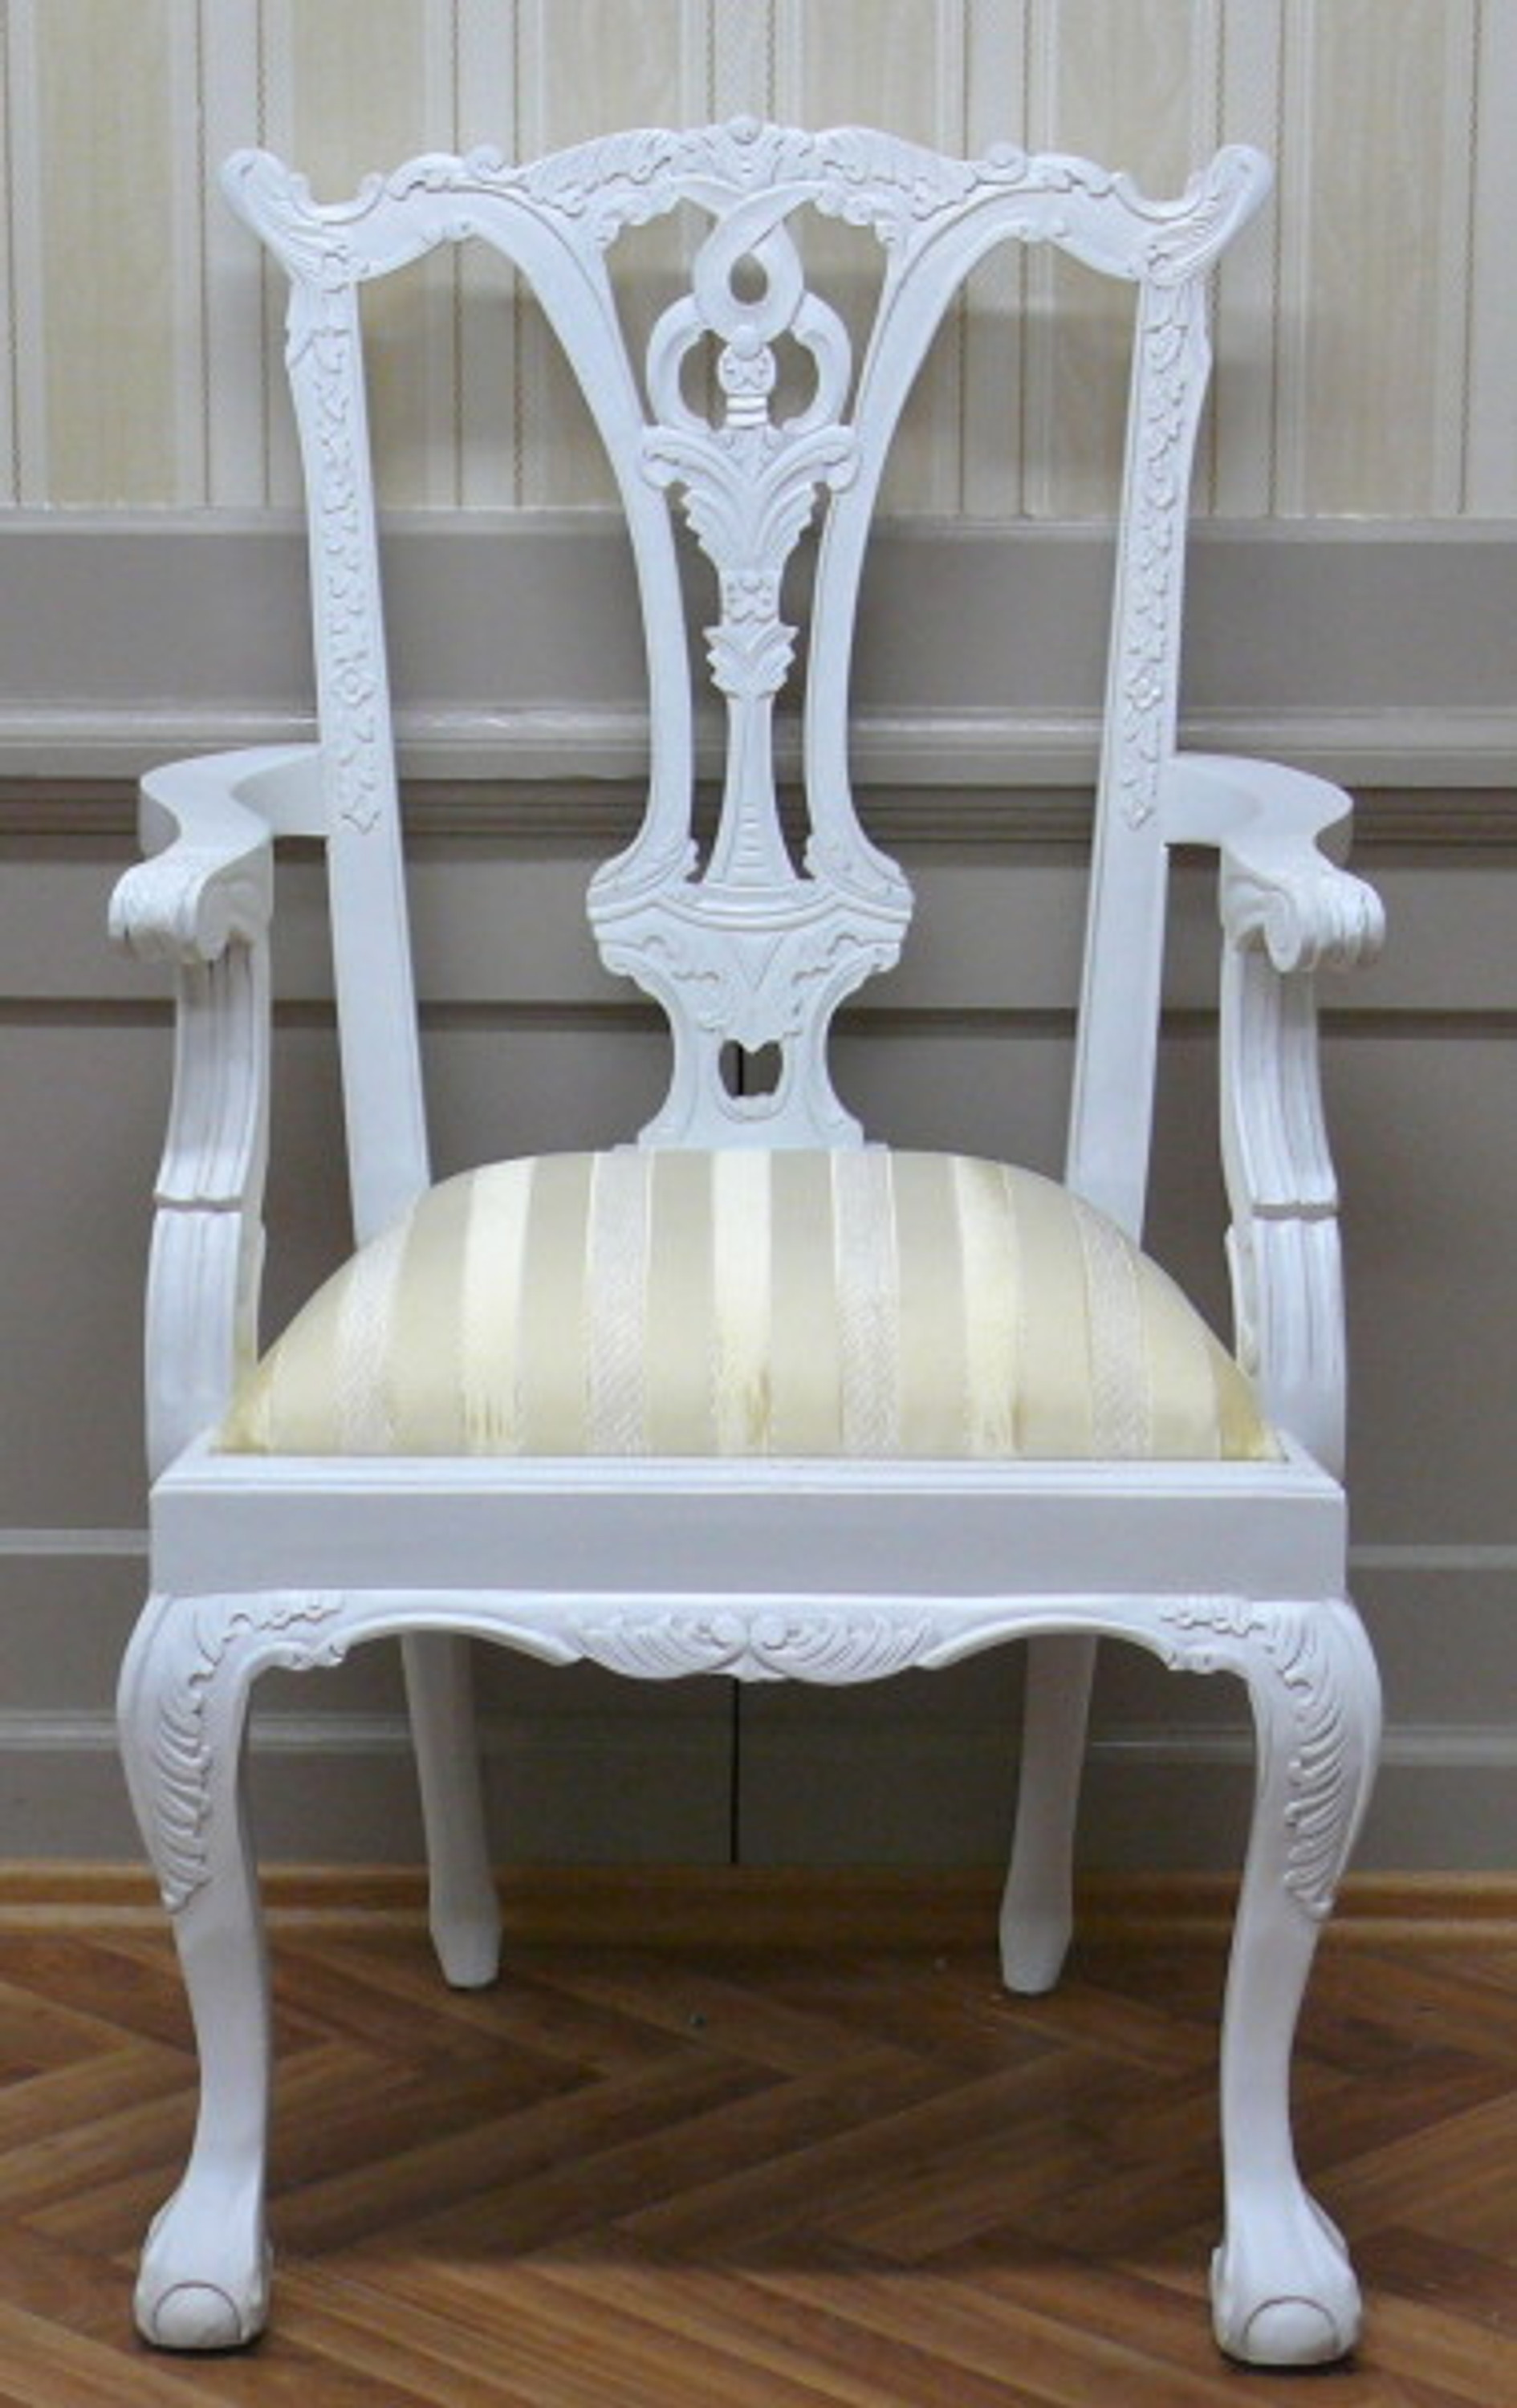 Baroque Chair Antique Style Collonial Style MjCh10053We